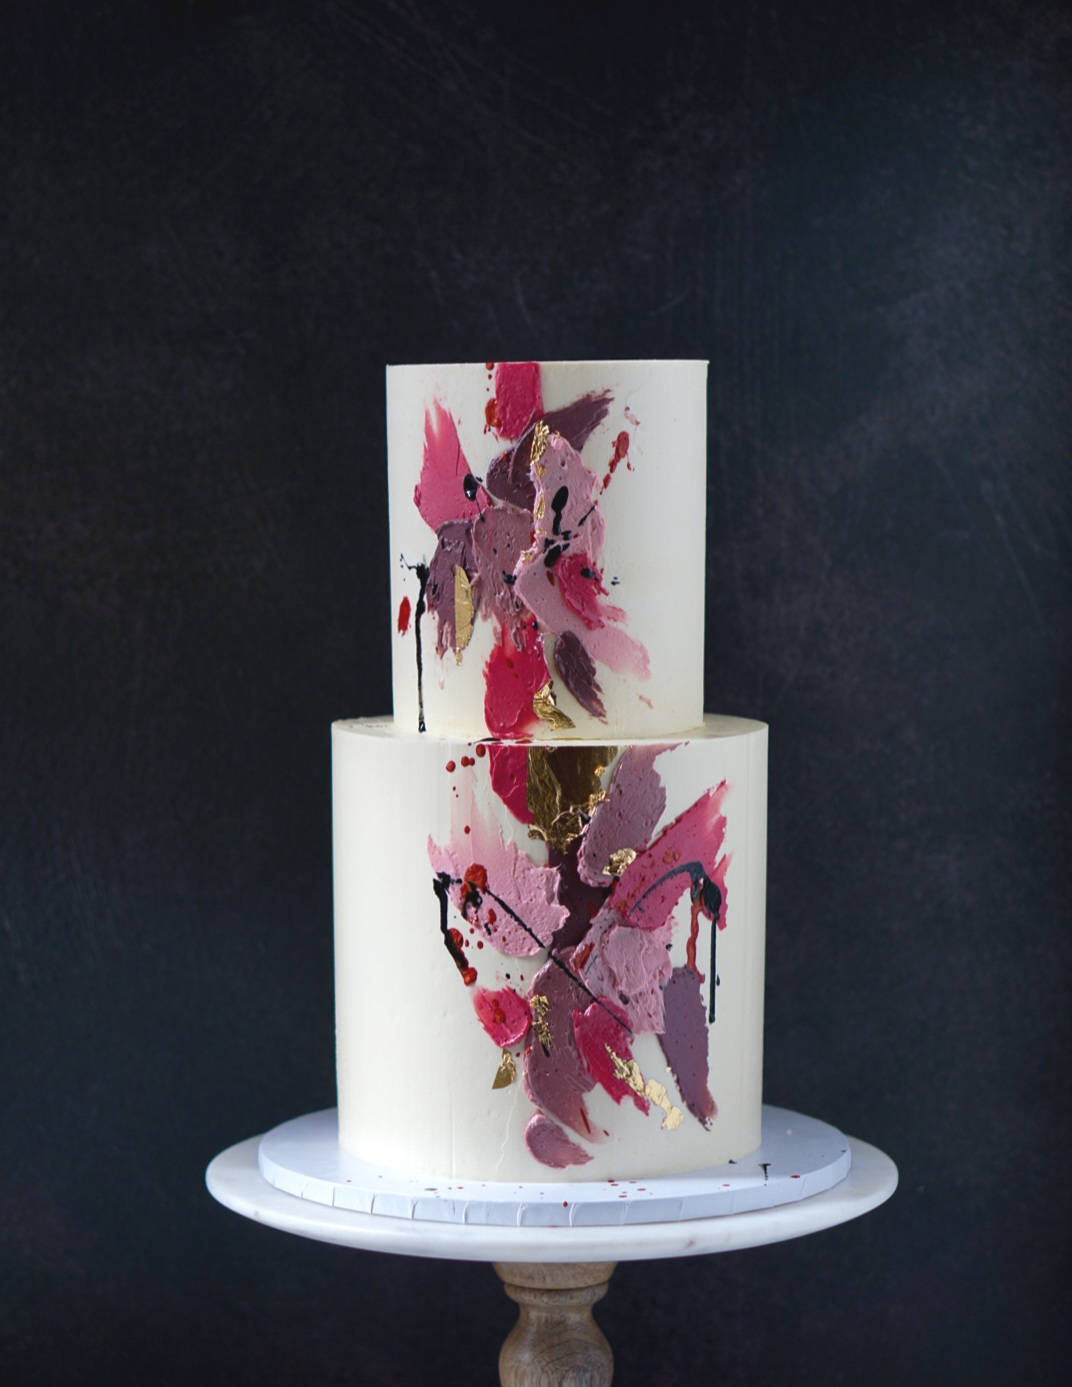 Pink abstract cake